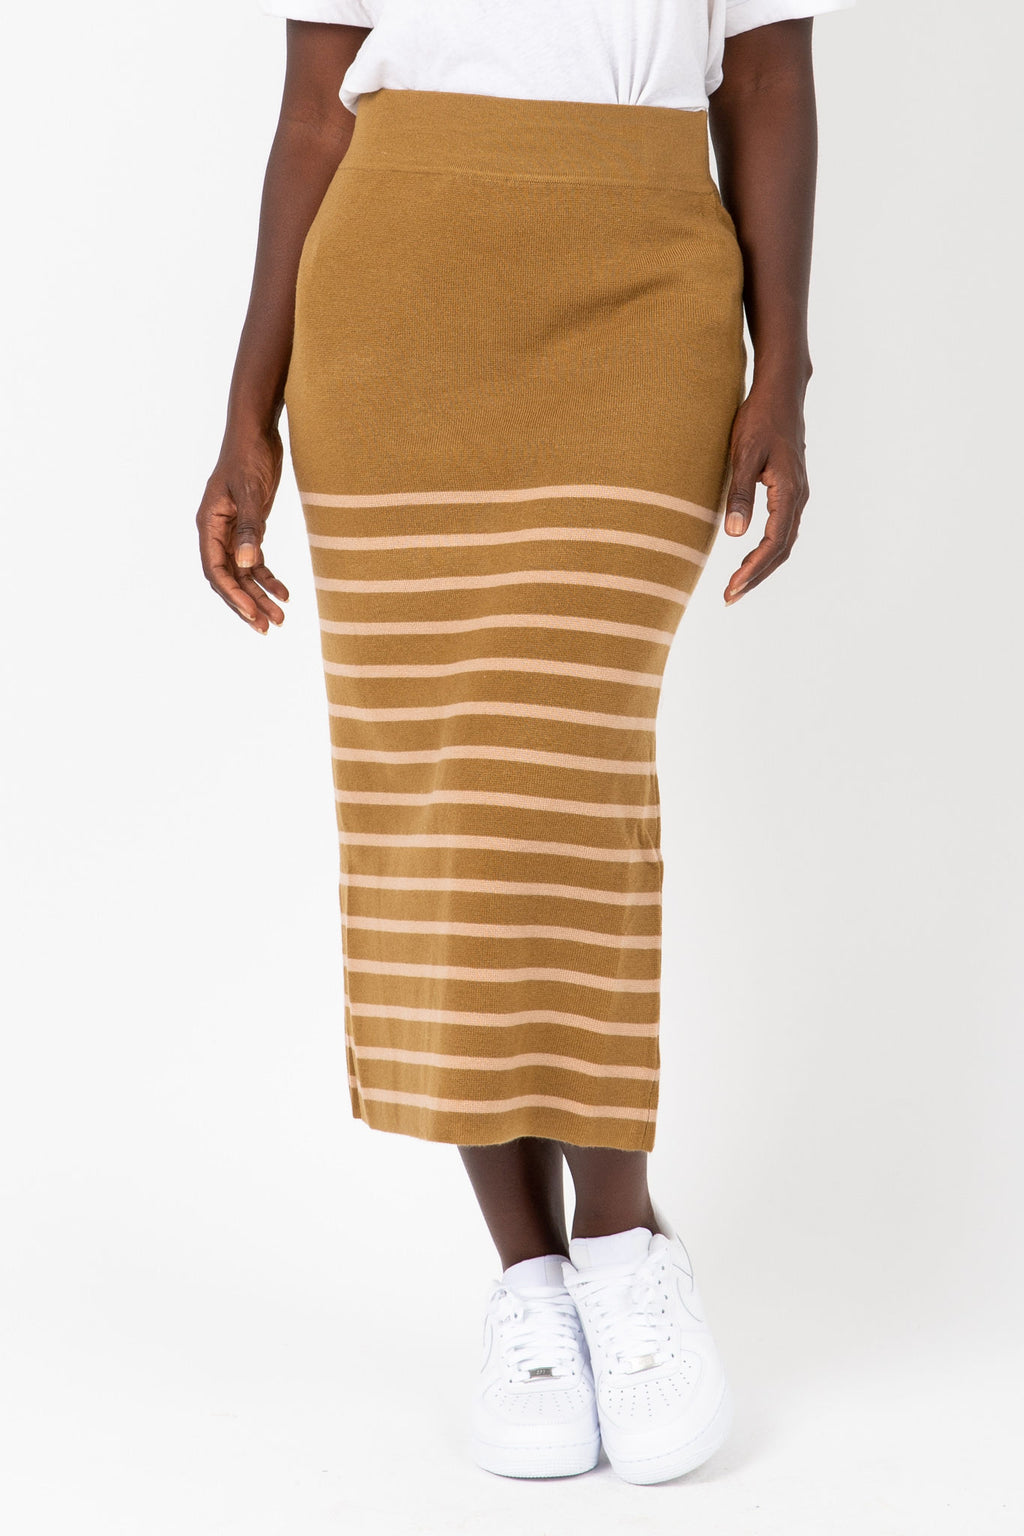 The Monica Knit Pairing Skirt in Herb, studio shoot; front view